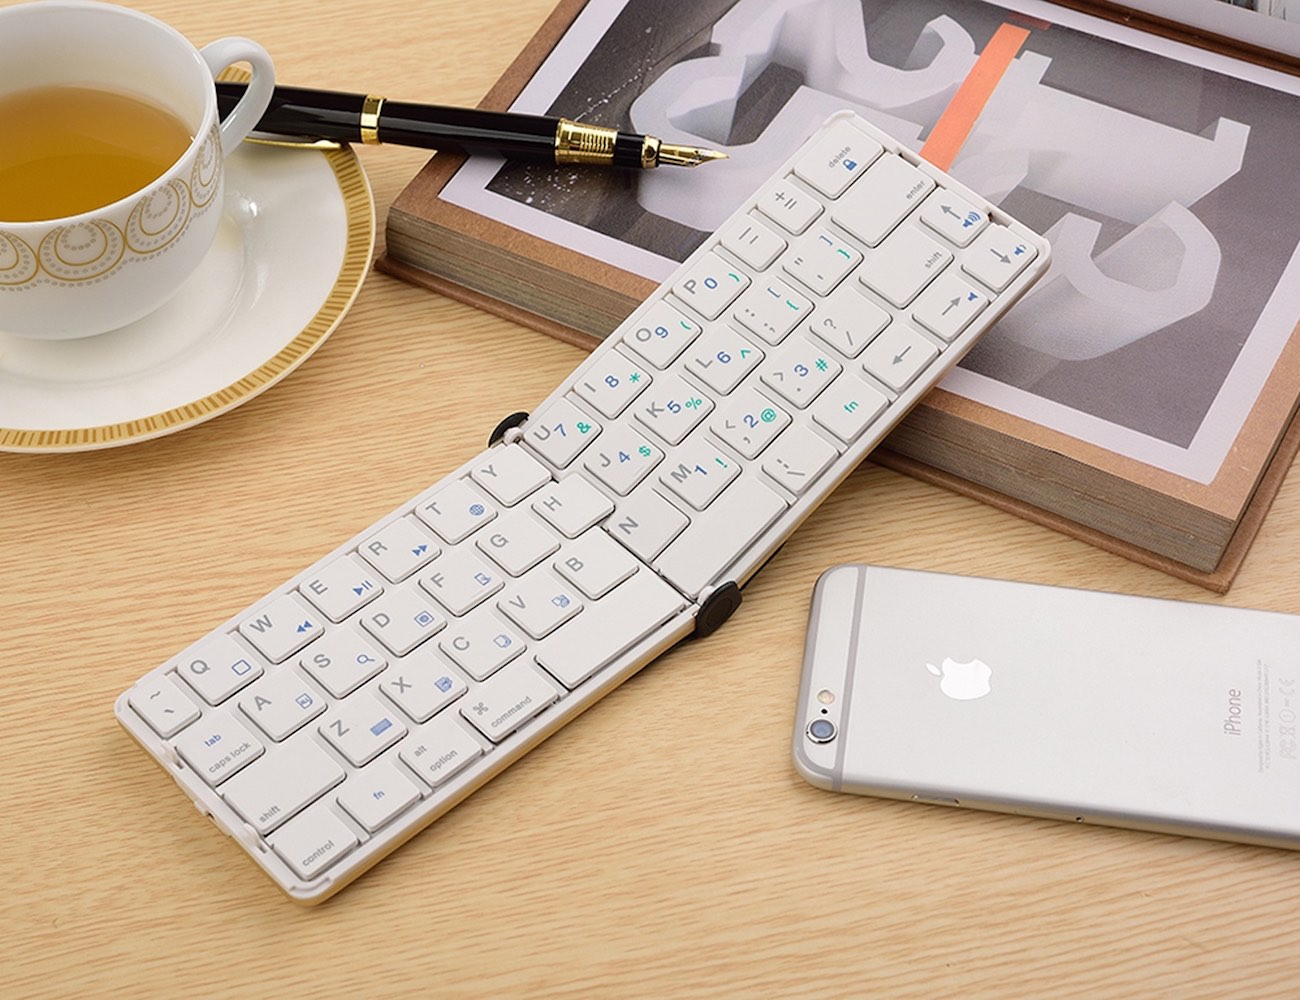 Universal Foldable Bluetooth Keyboard by iLepo